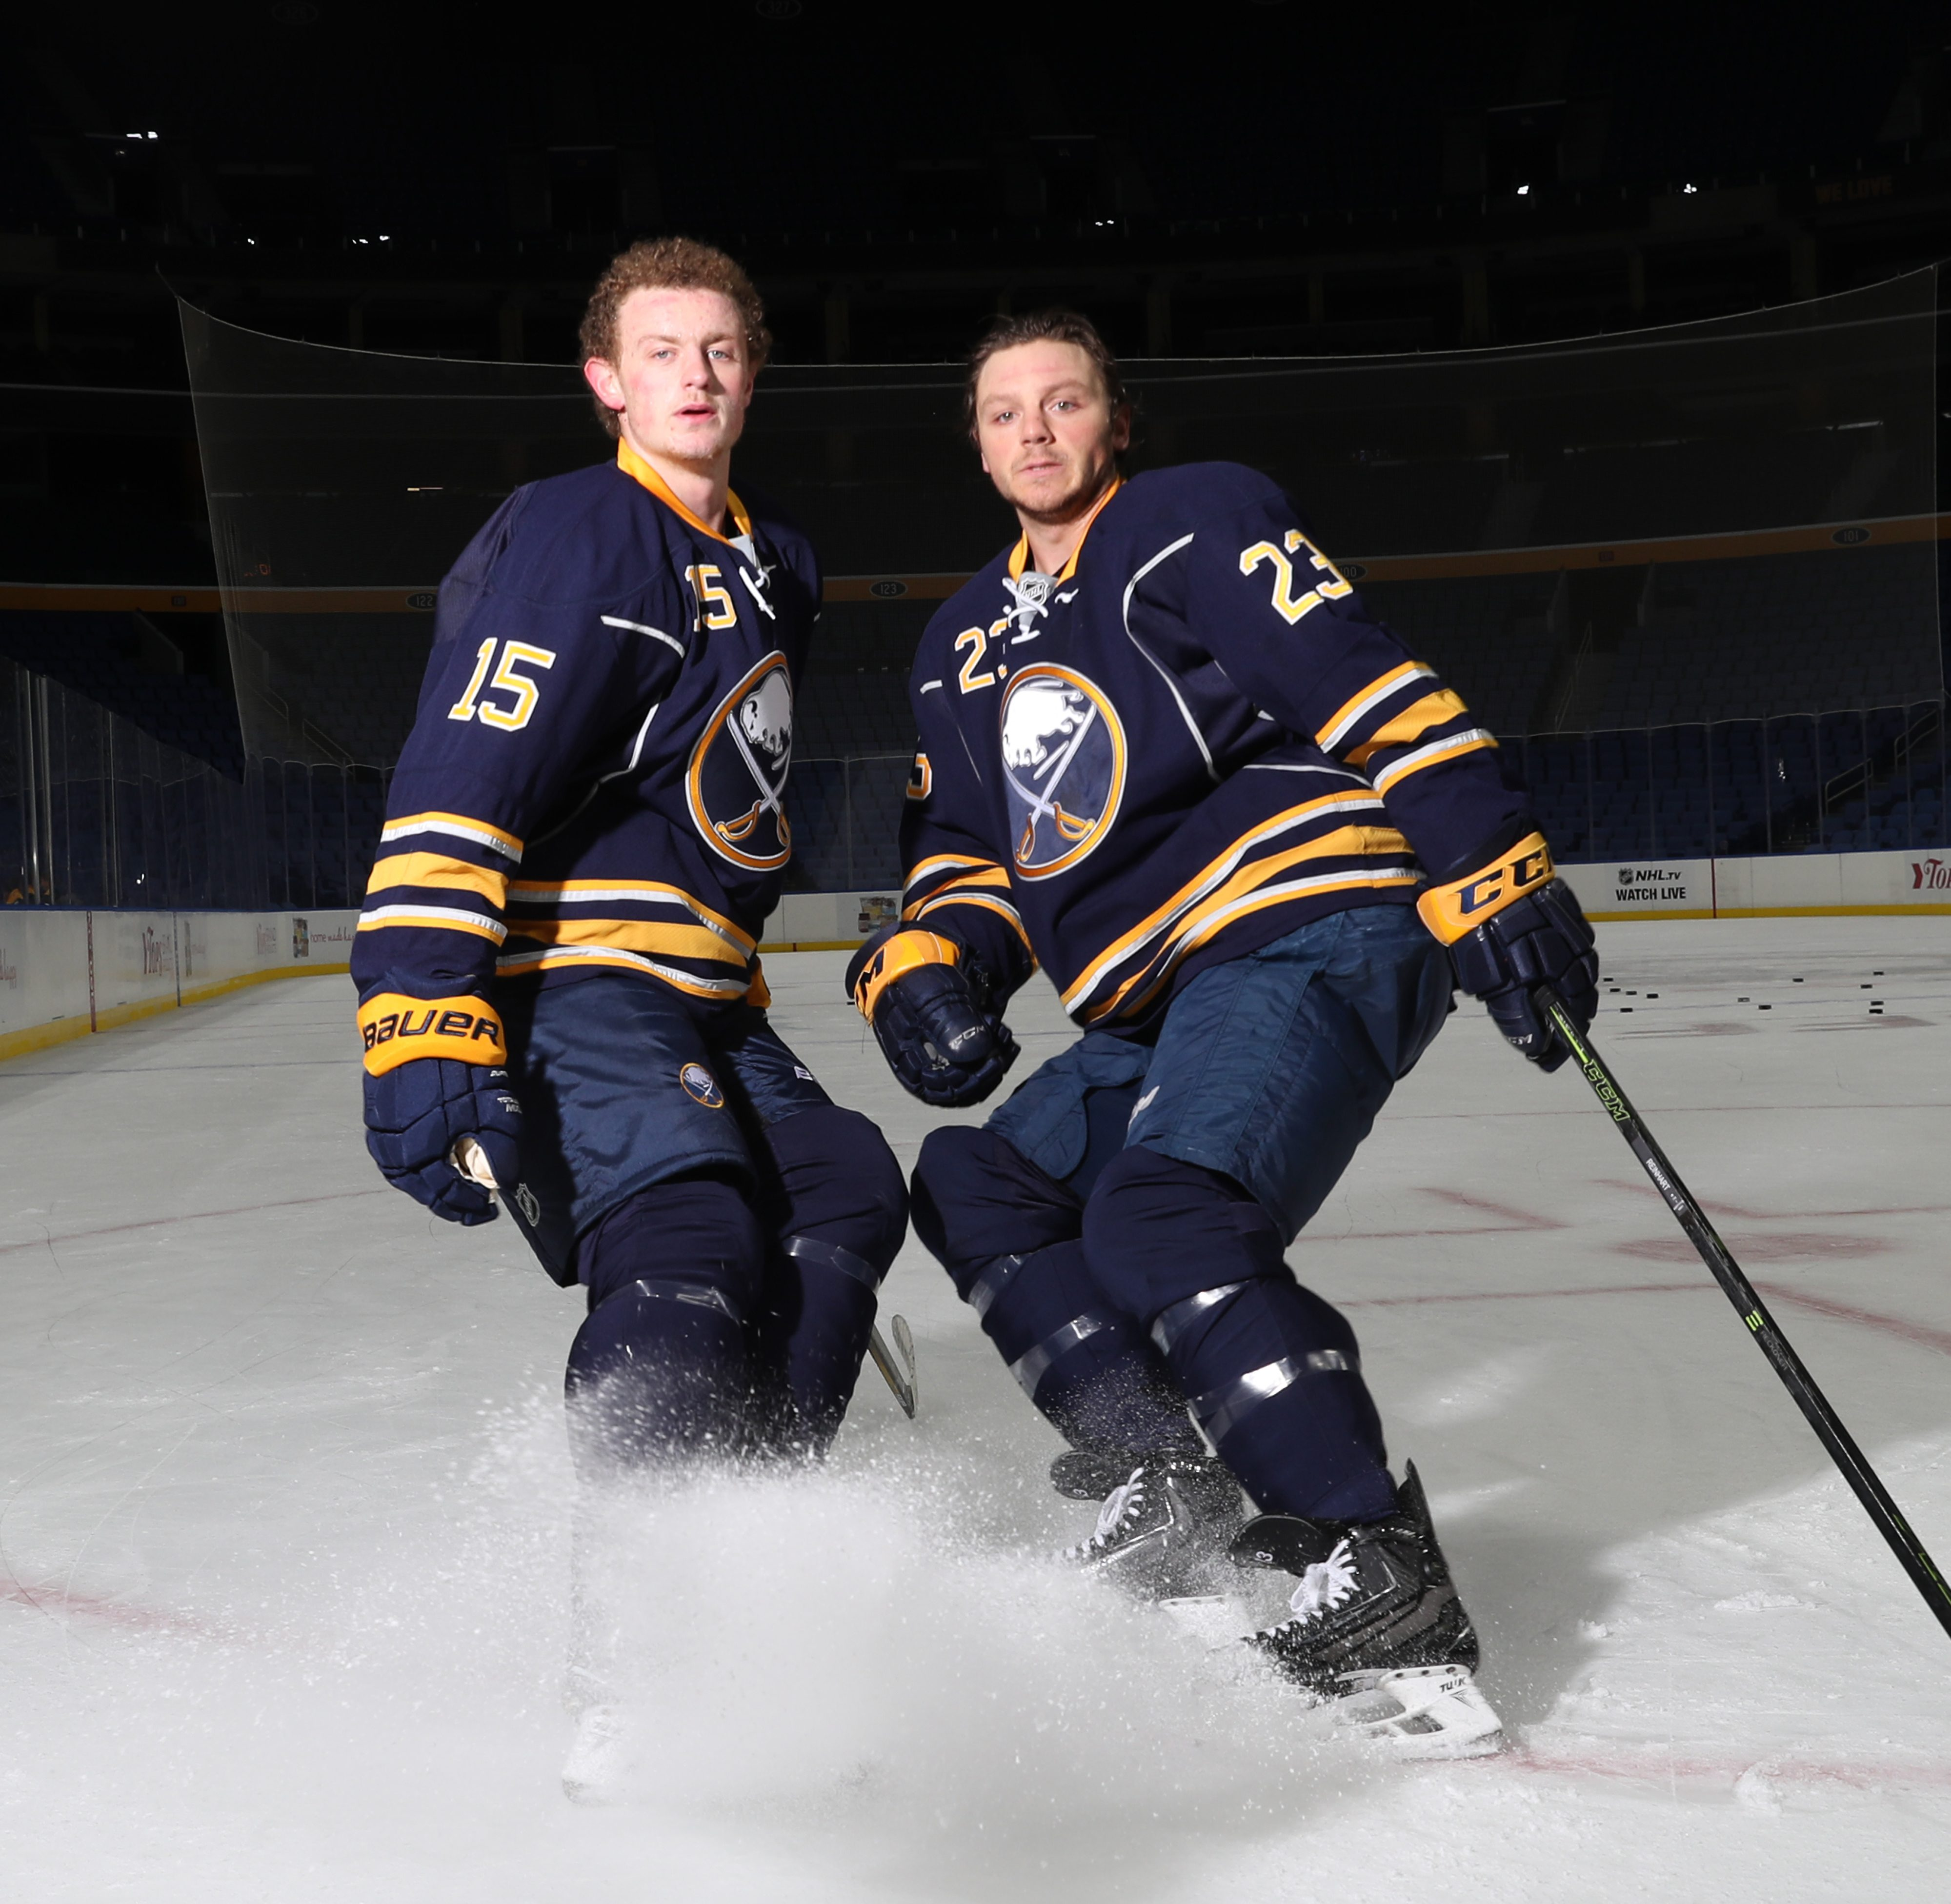 Jack Eichel and Sam Reinhart are determined to become an elite pair in the NHL. If they succeed, it will be a breath of fresh air for playoff-starved Buffalo. (James P. McCoy/ Buffalo News)